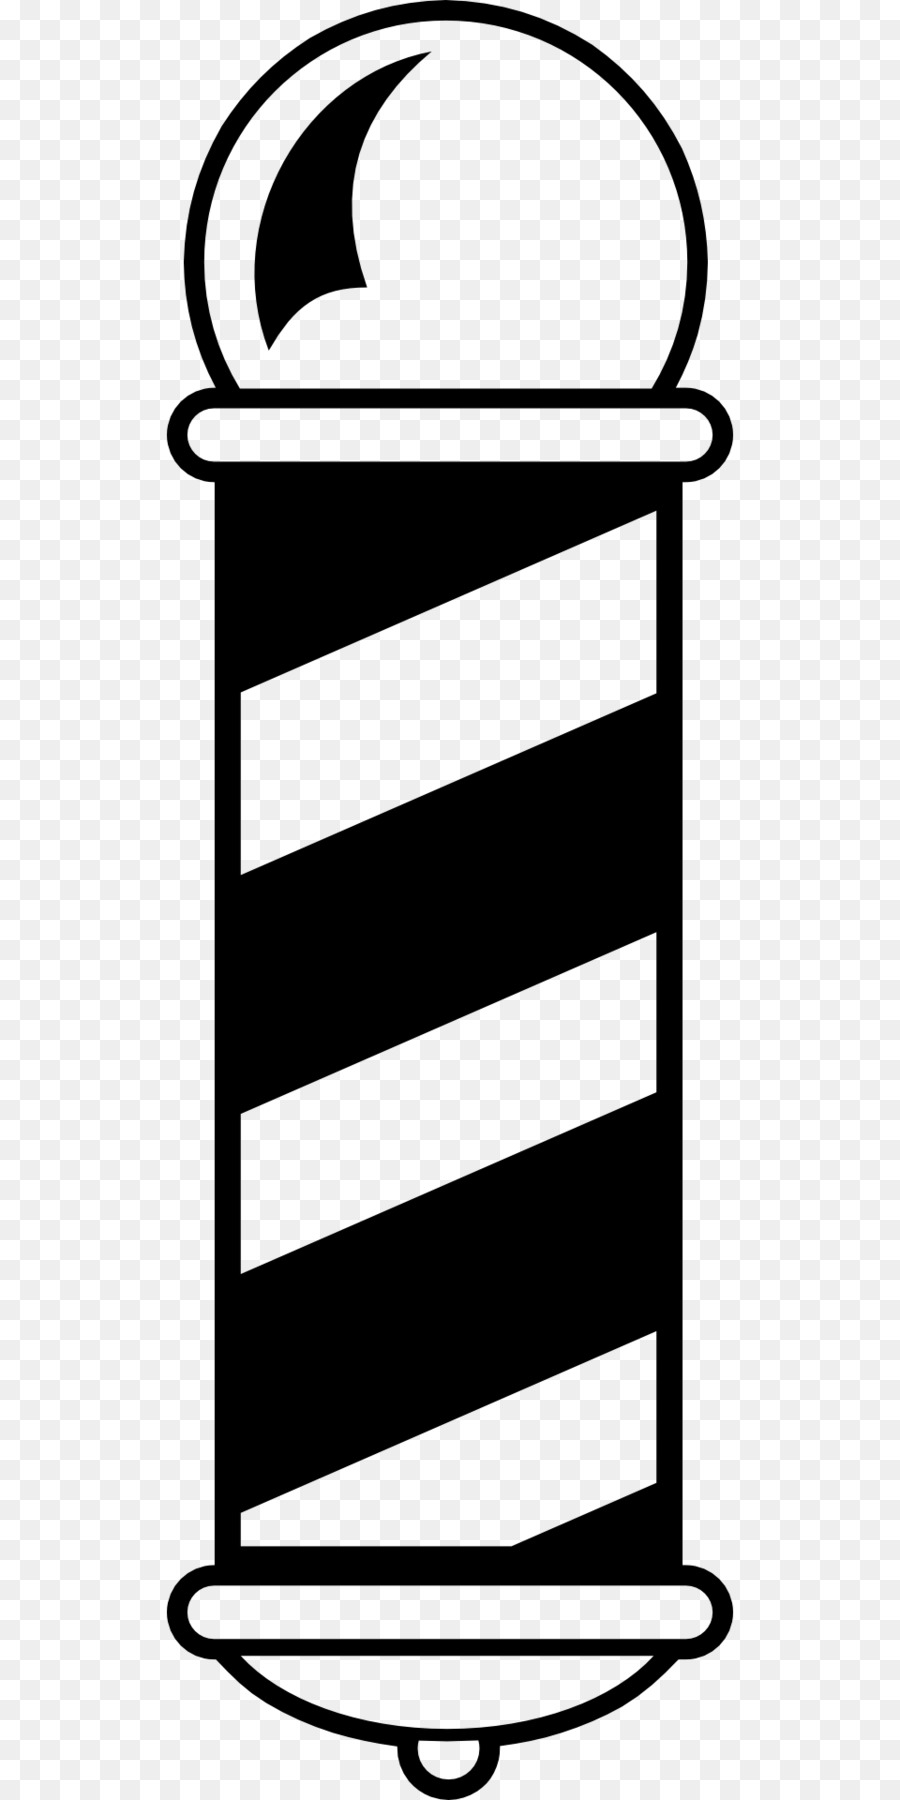 barber s pole clip art barber pole png download 960 1920 free rh kisspng com